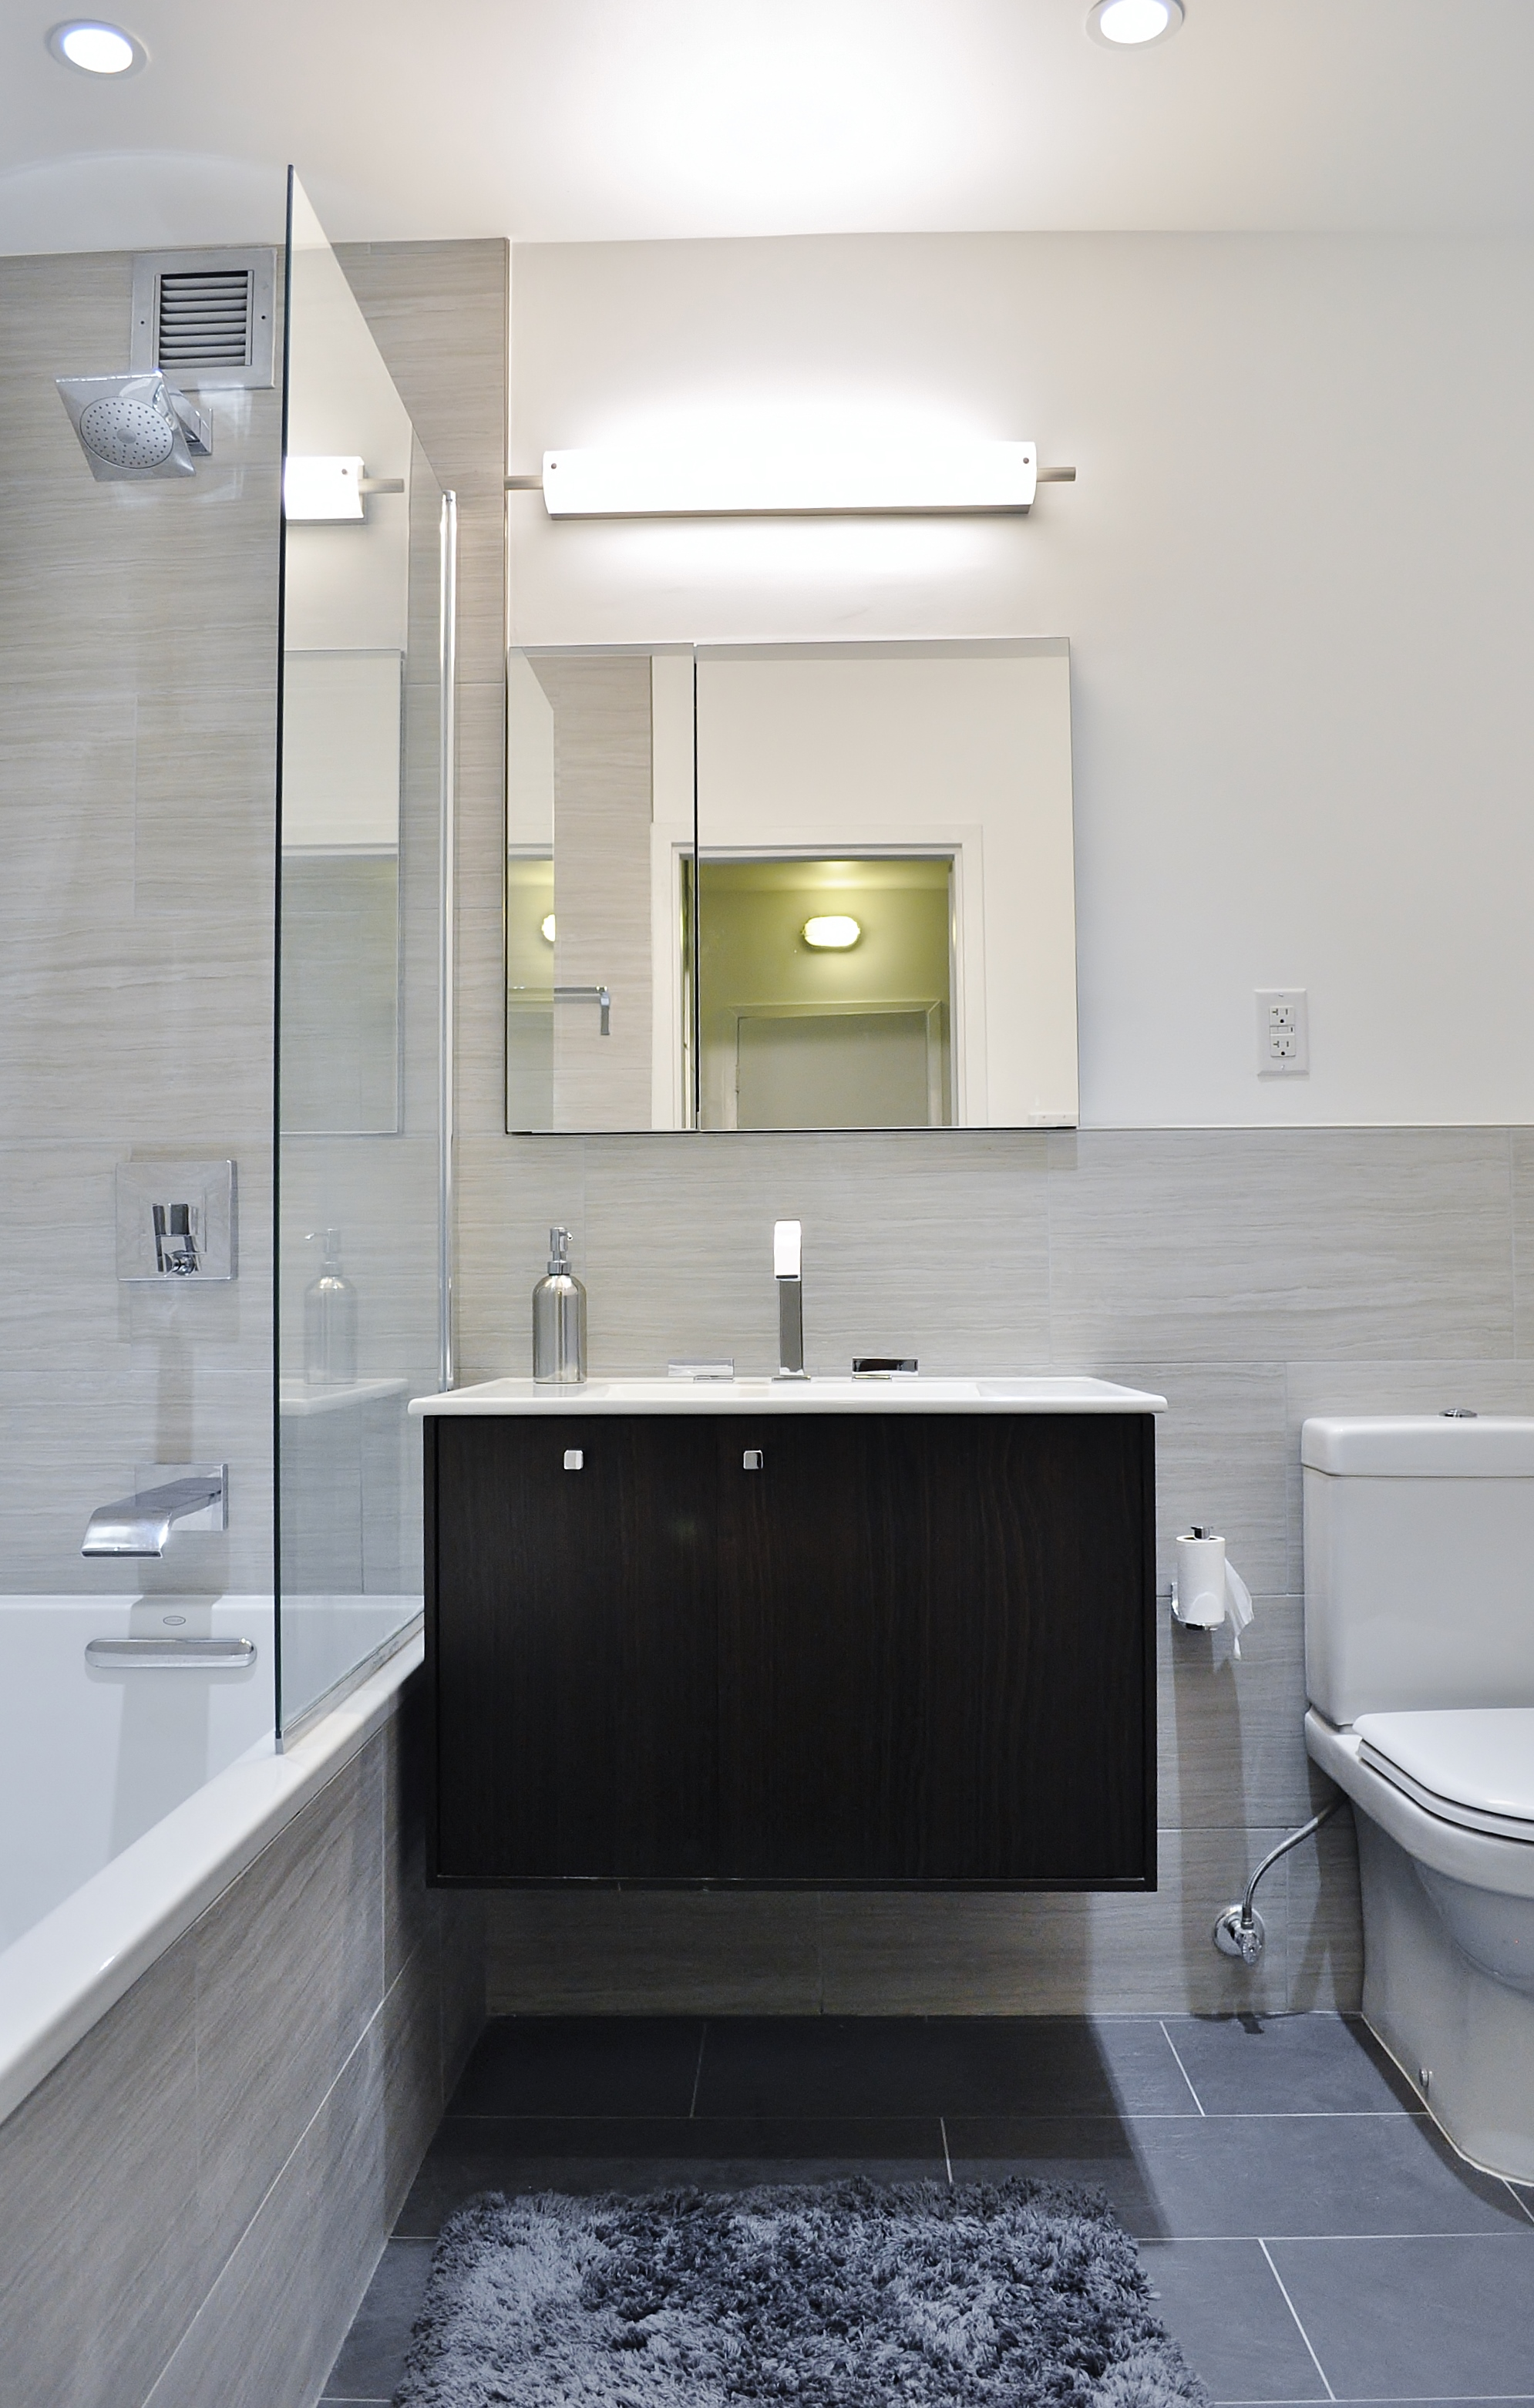 Bathroom Remodel Nyc shiny & chic white, contemporary nyc kitchen (before & after